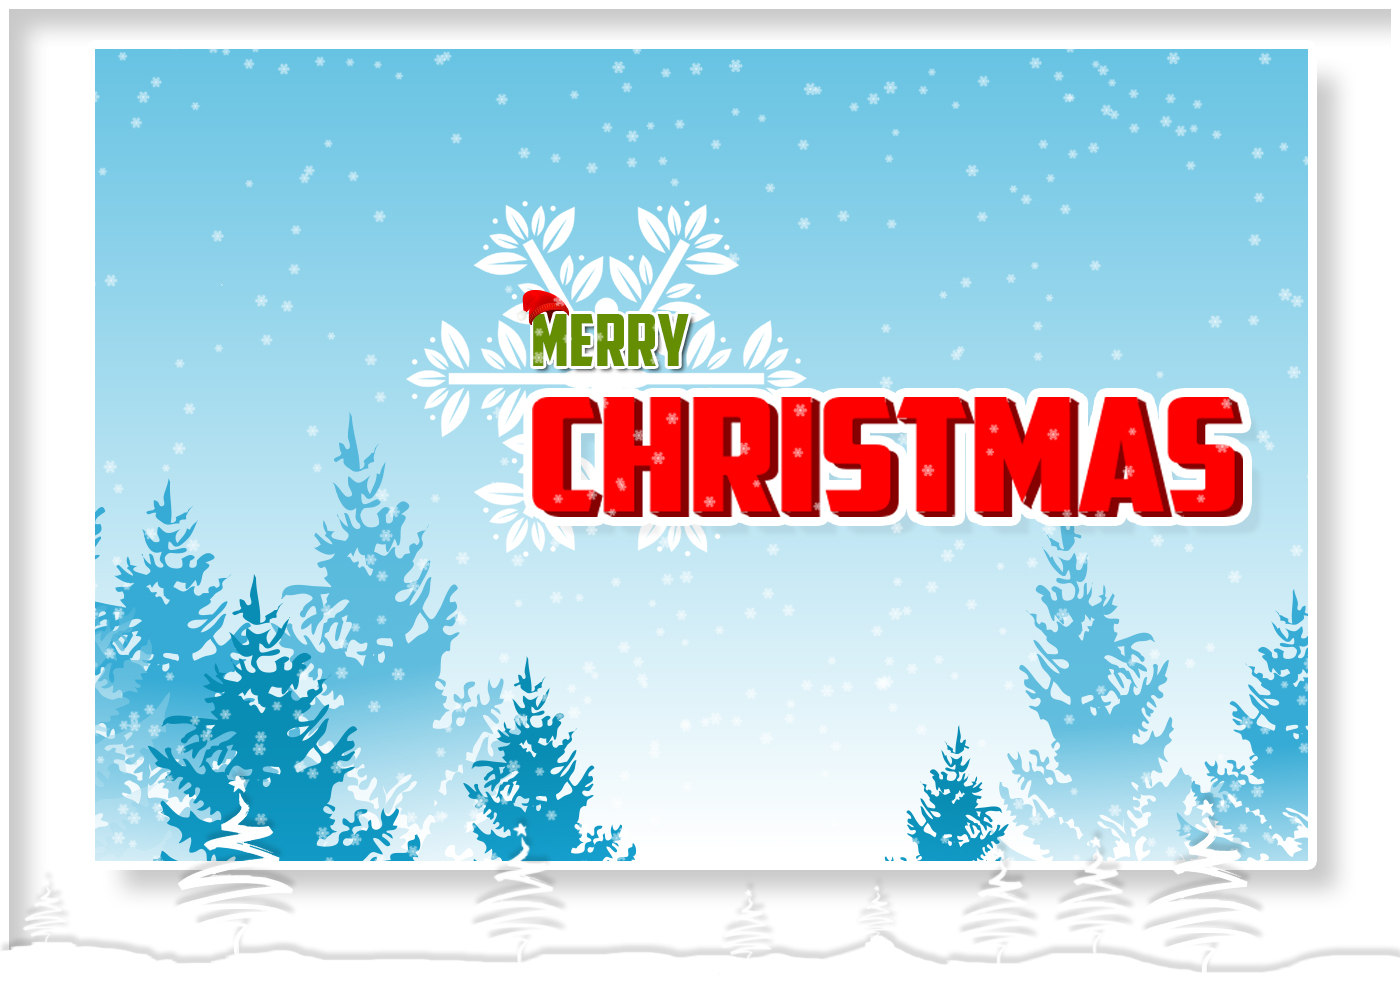 Merry Christmas Wallpaper.Free Merry Christmas Wallpapers And Desktop Background